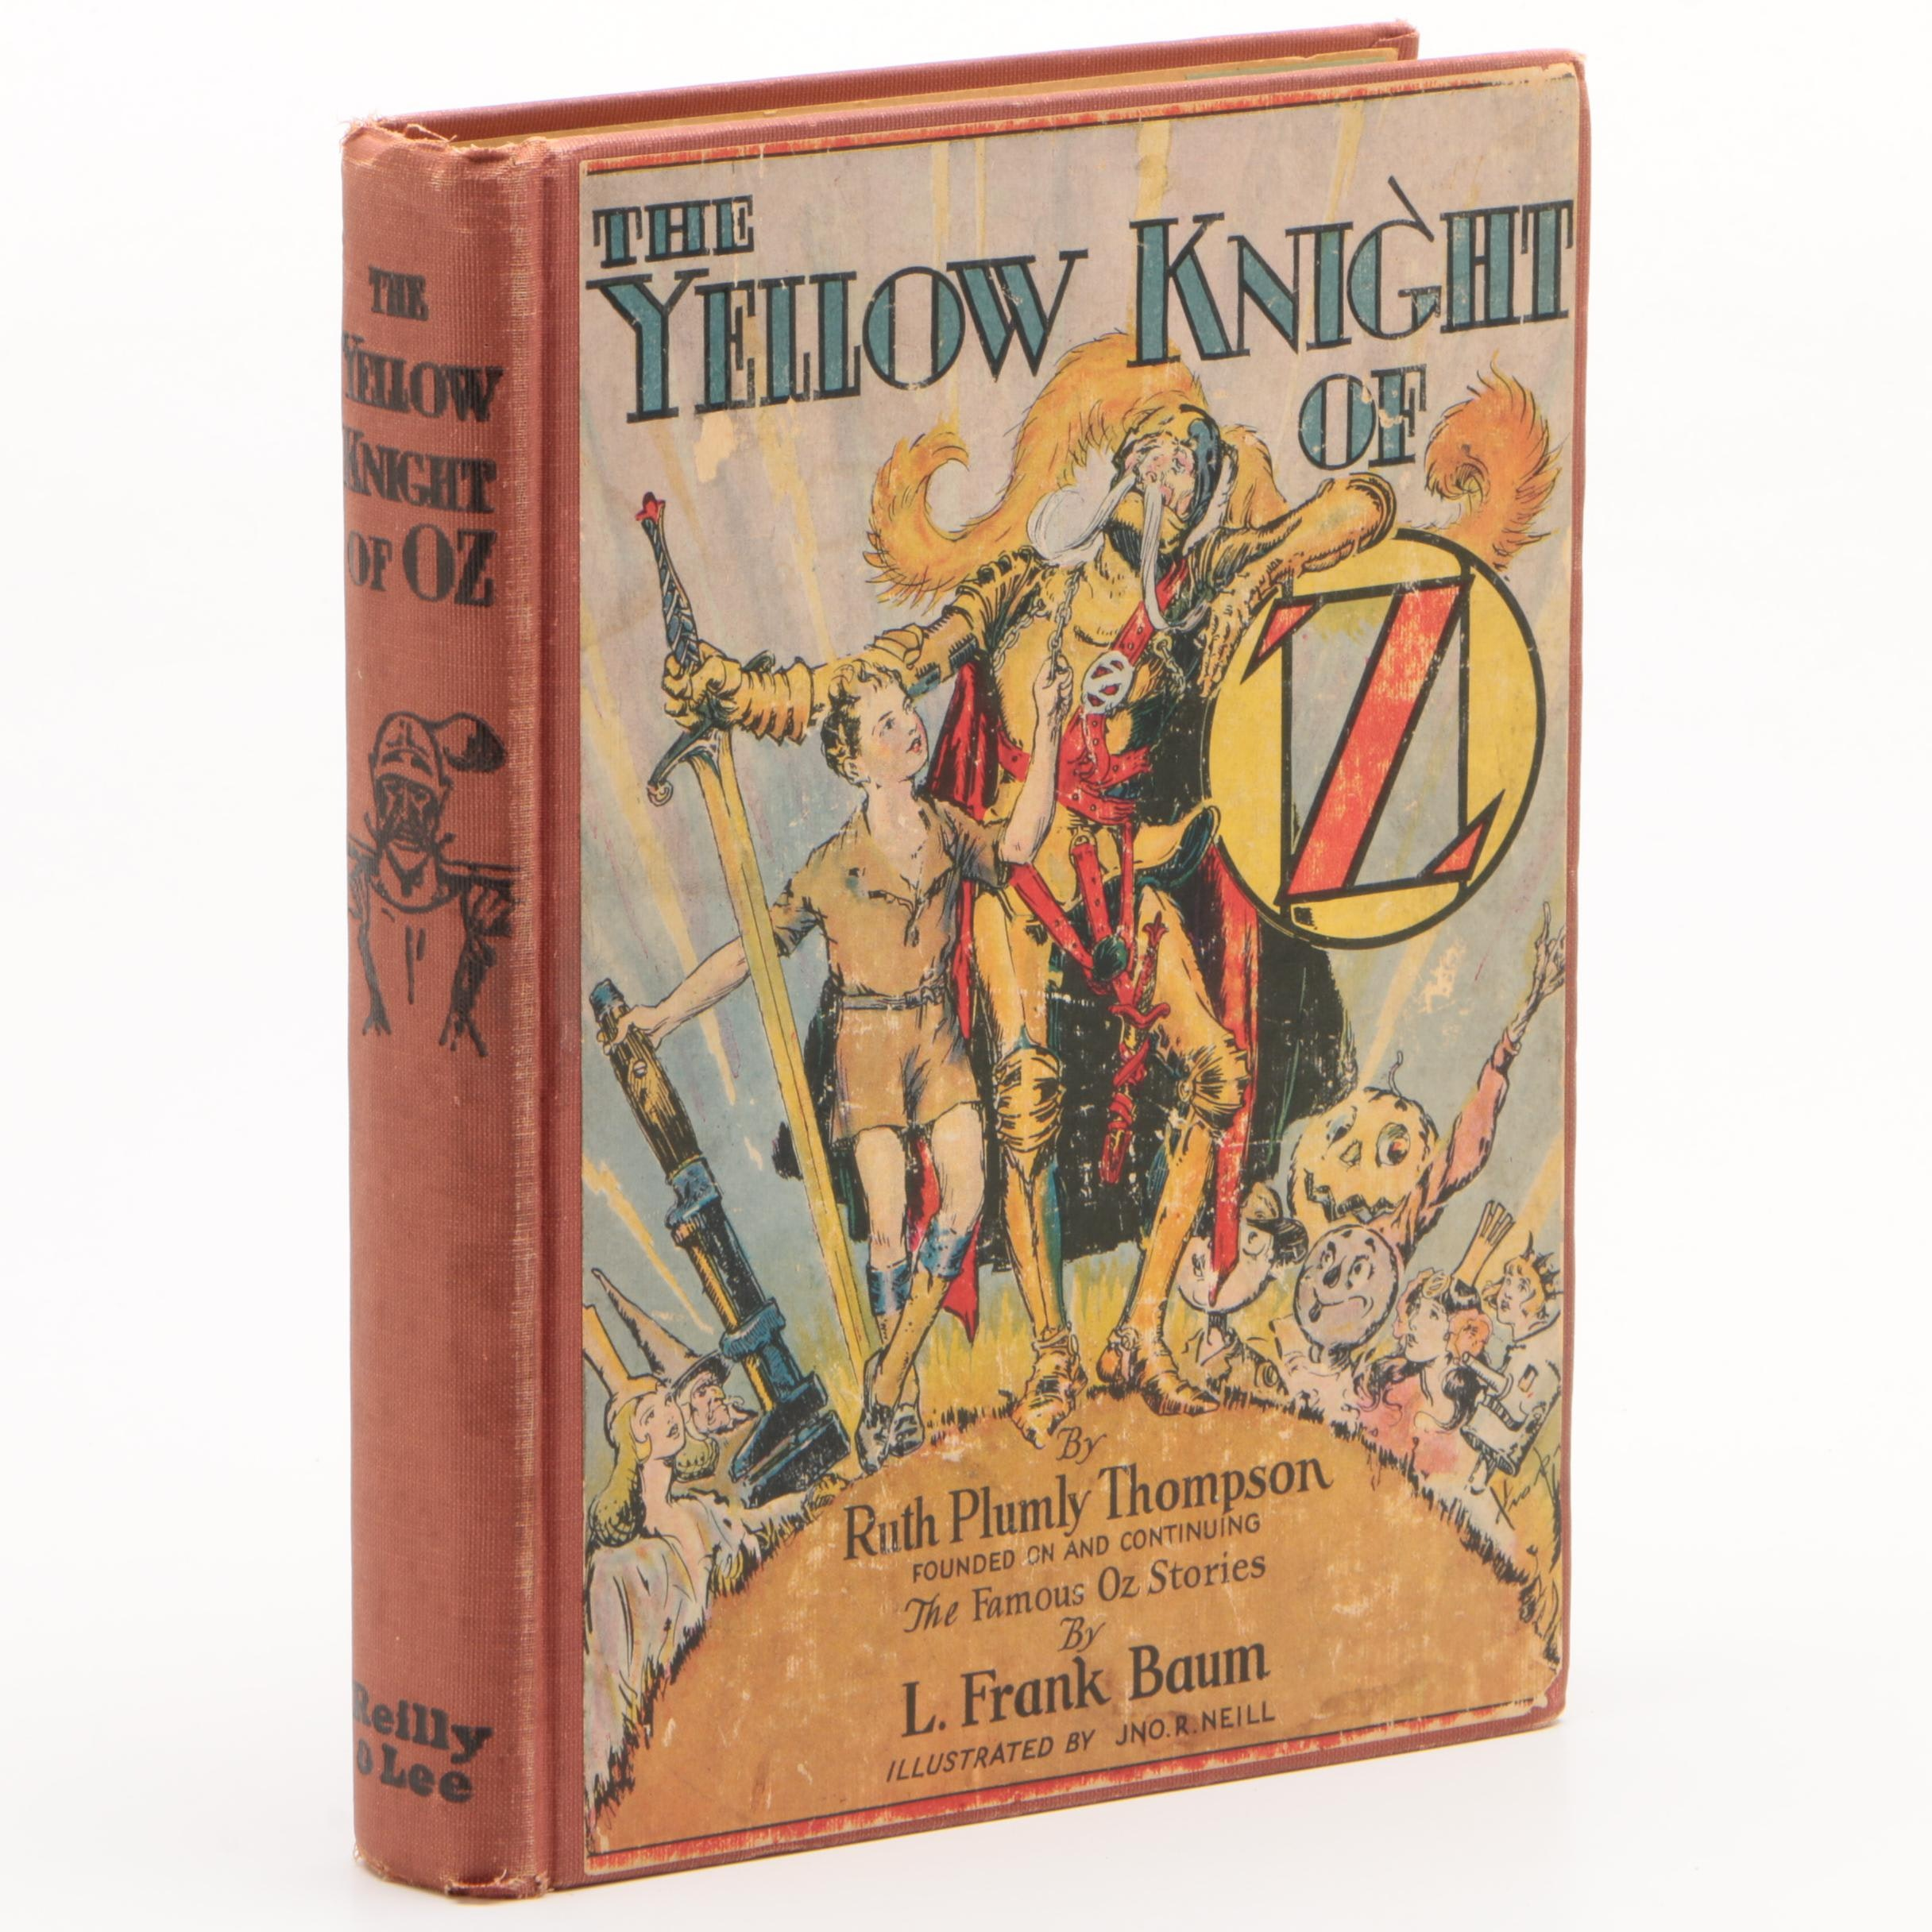 """1930 First Edition """"The Yellow Knight of Oz"""" by Ruth Plumly Thompson"""